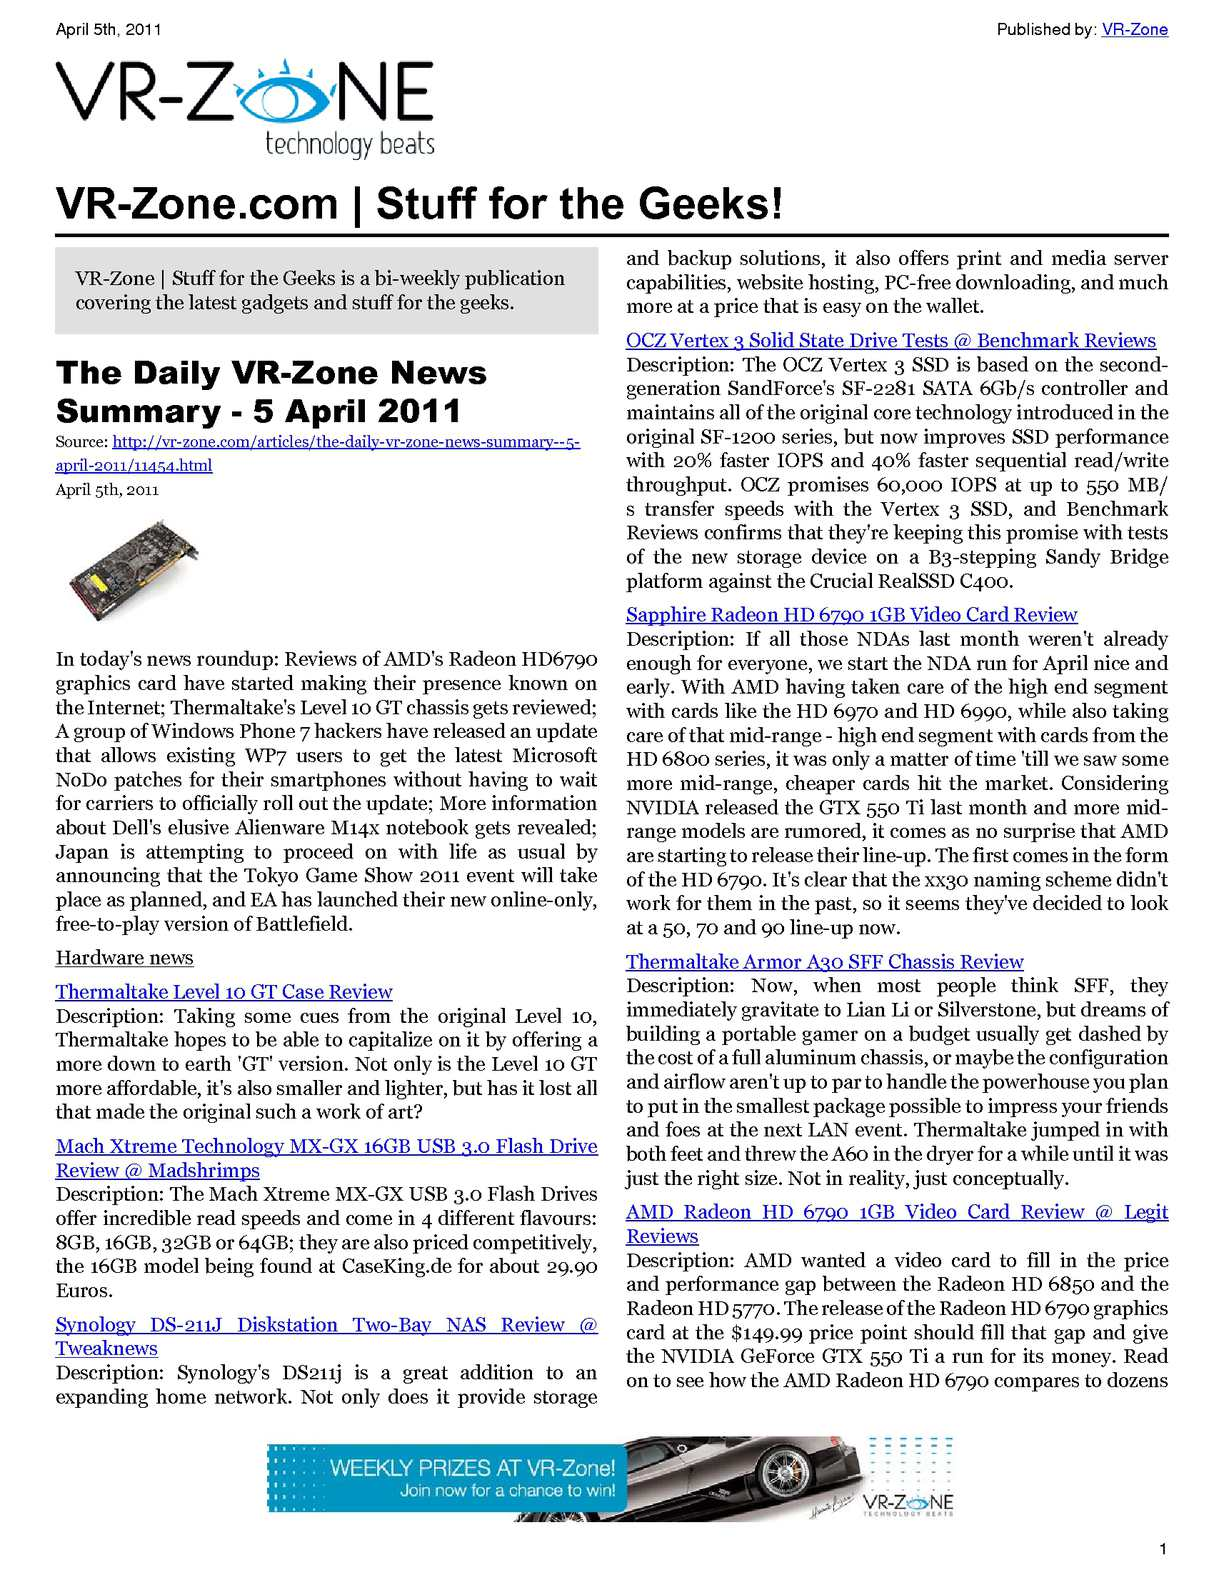 Calamo Vr Zone Technology News Stuff For The Geeks Apr 2011 Issue Protection Circuit Board 2 1channel Speaker Neweggcom